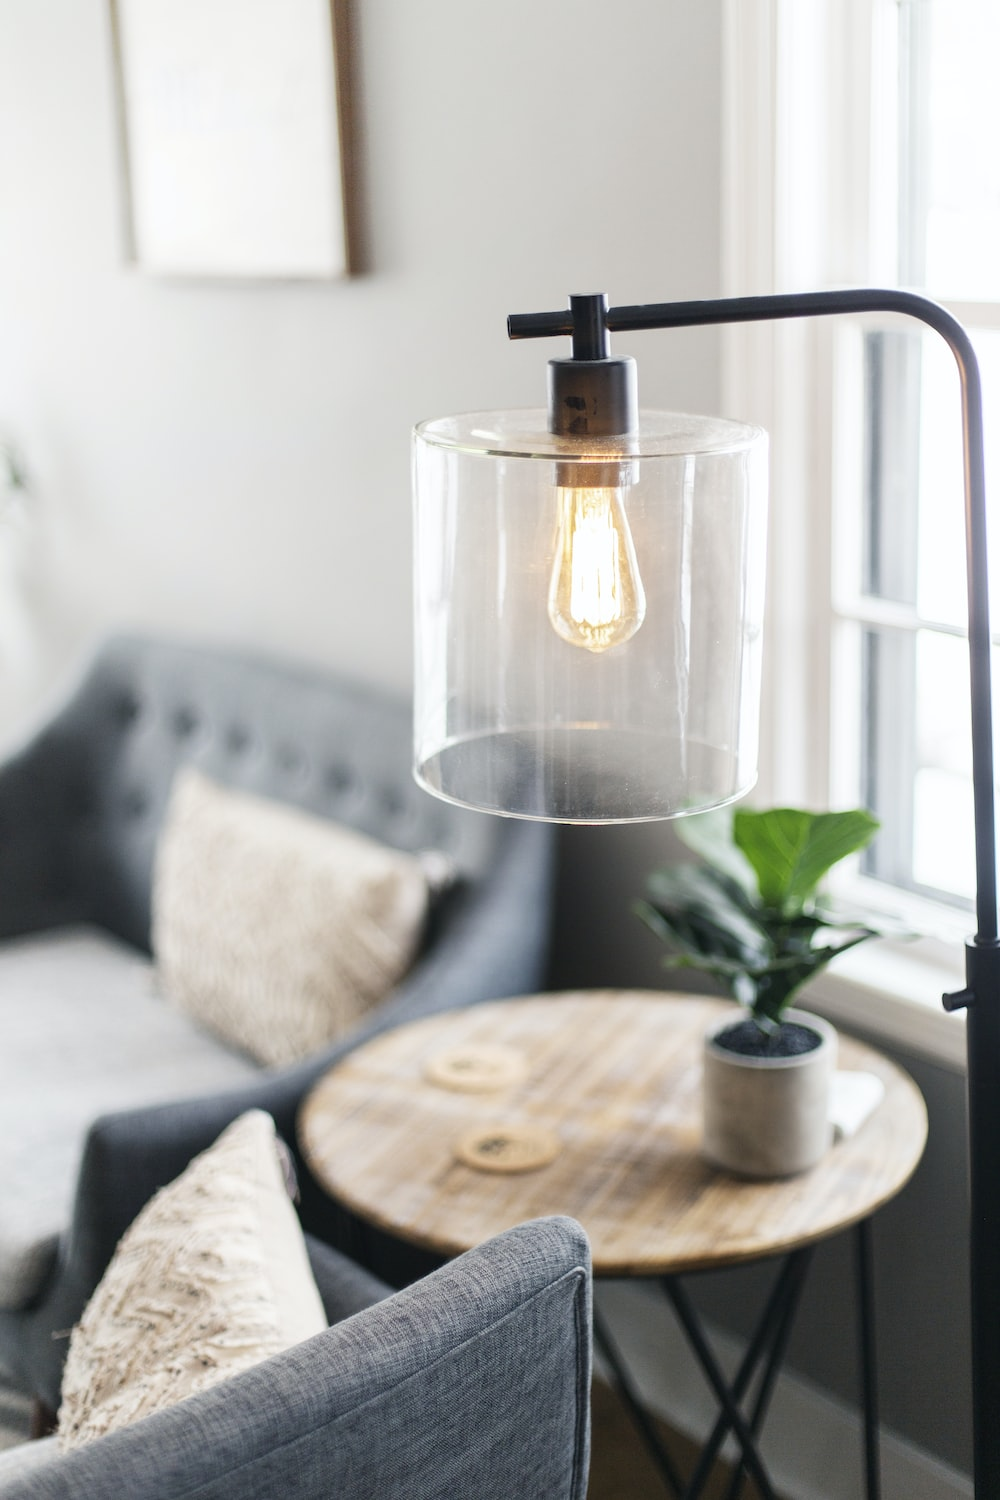 clear glass lamp on table